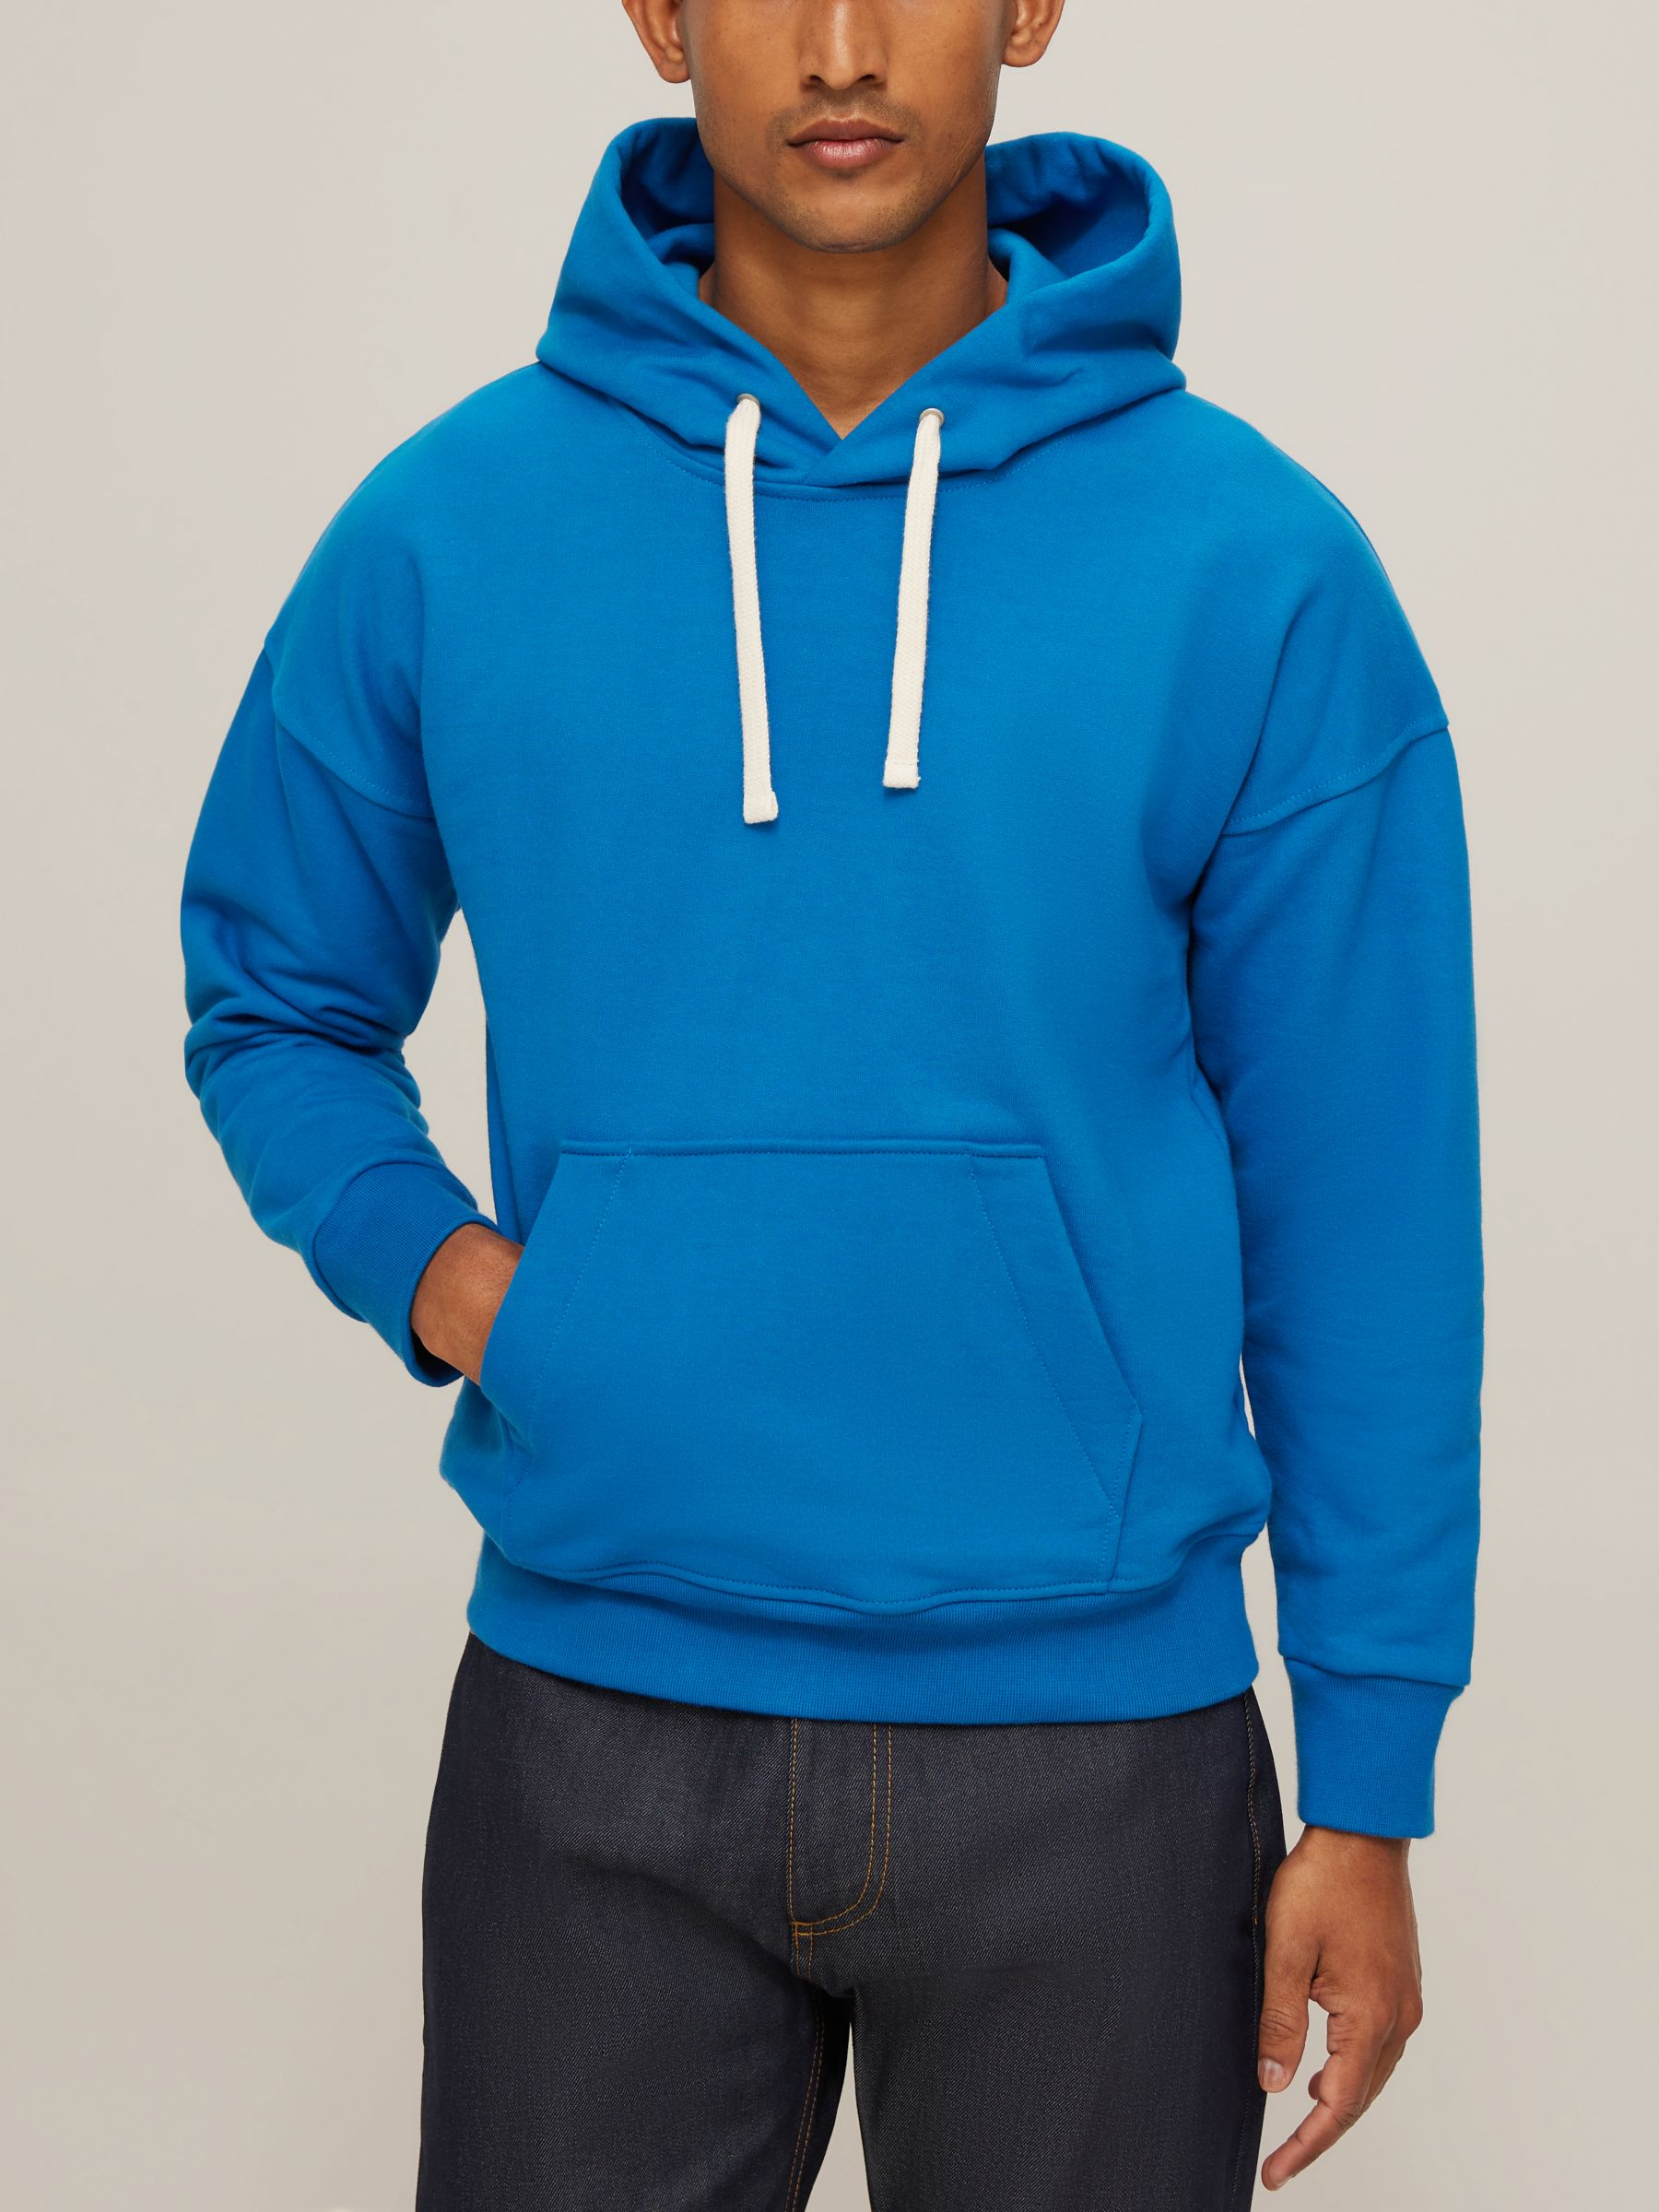 Community Clothing Cotton Hoodie